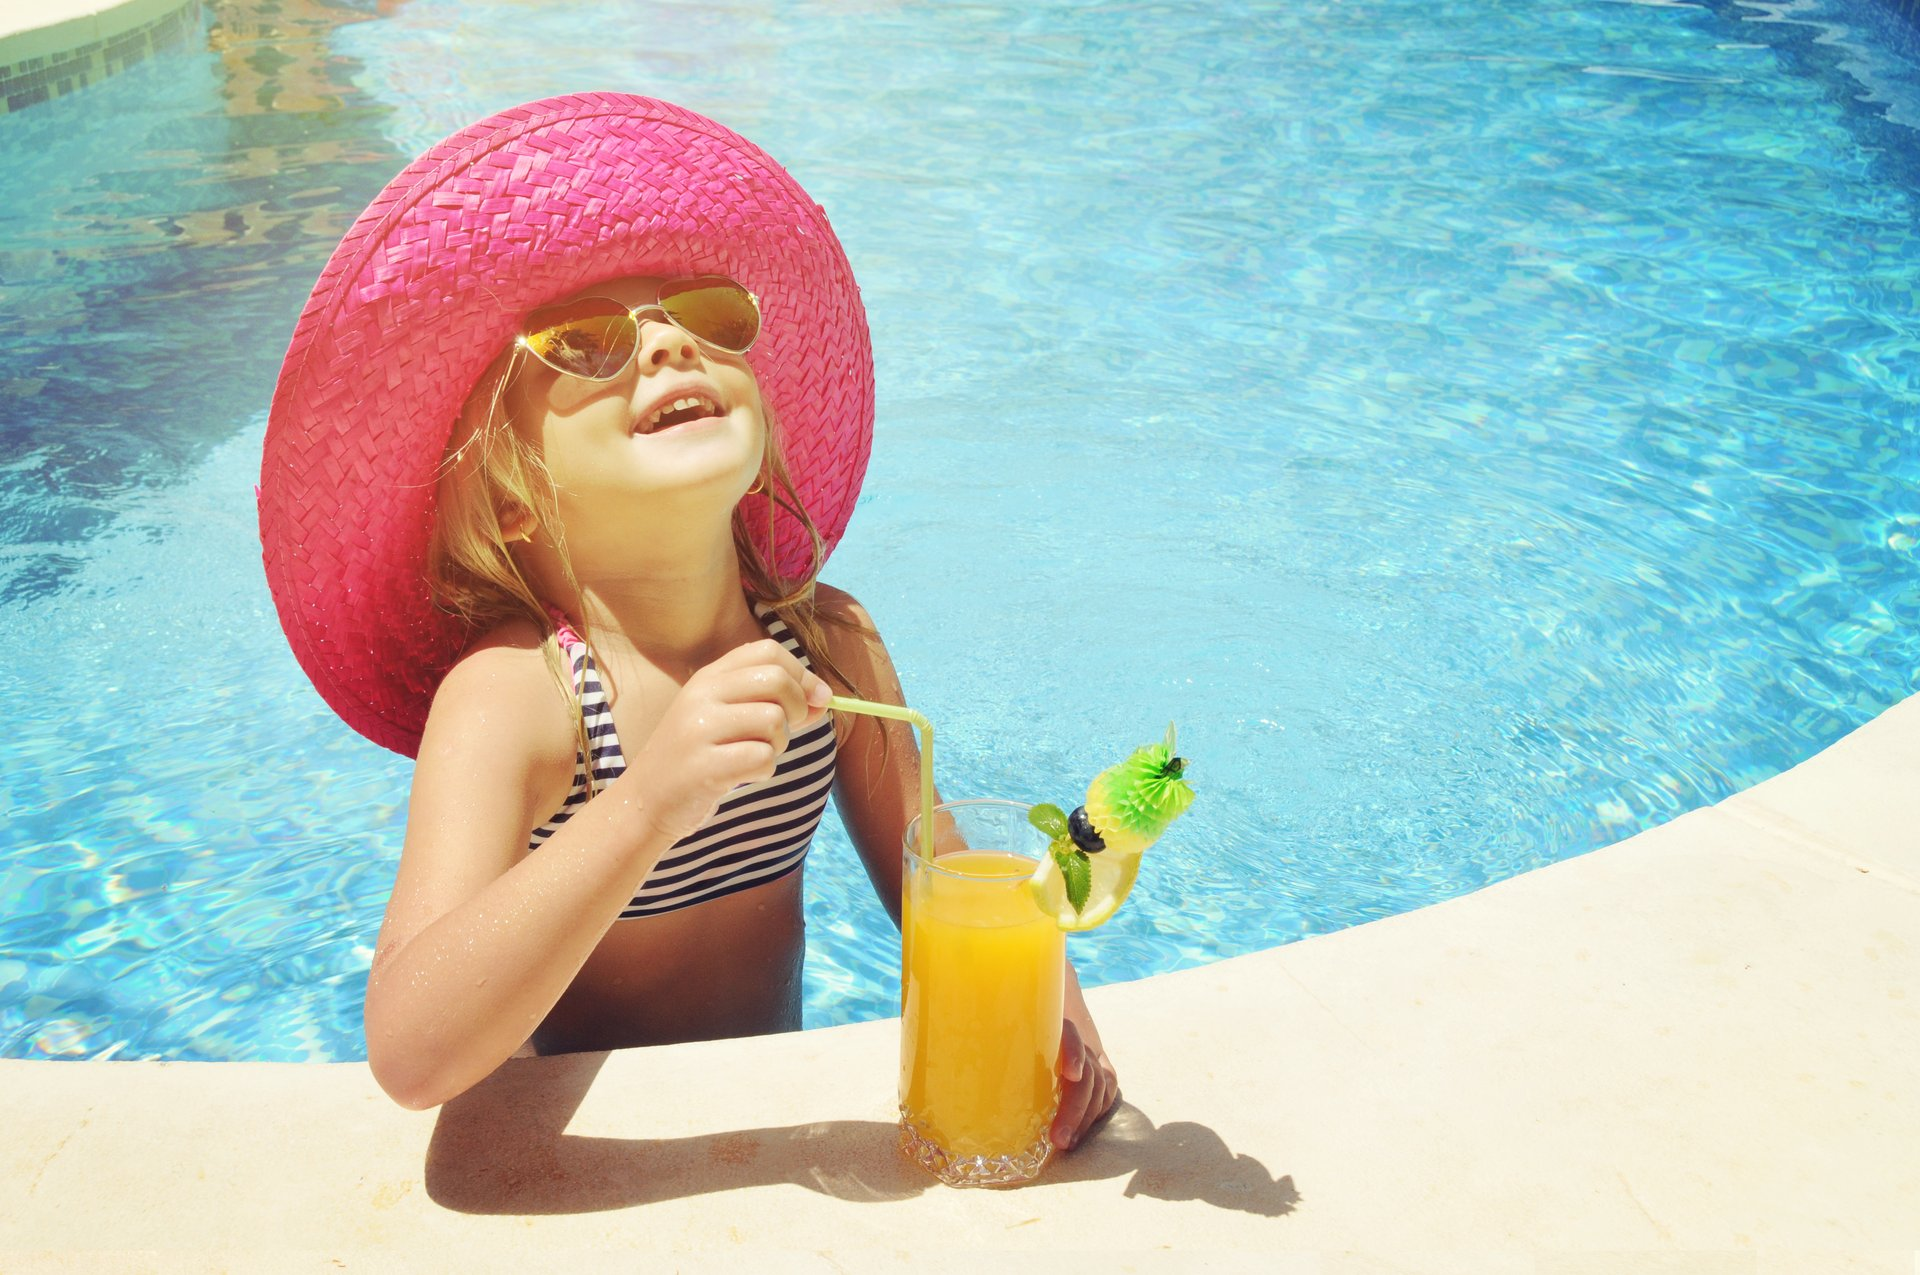 Girl with drink in pool